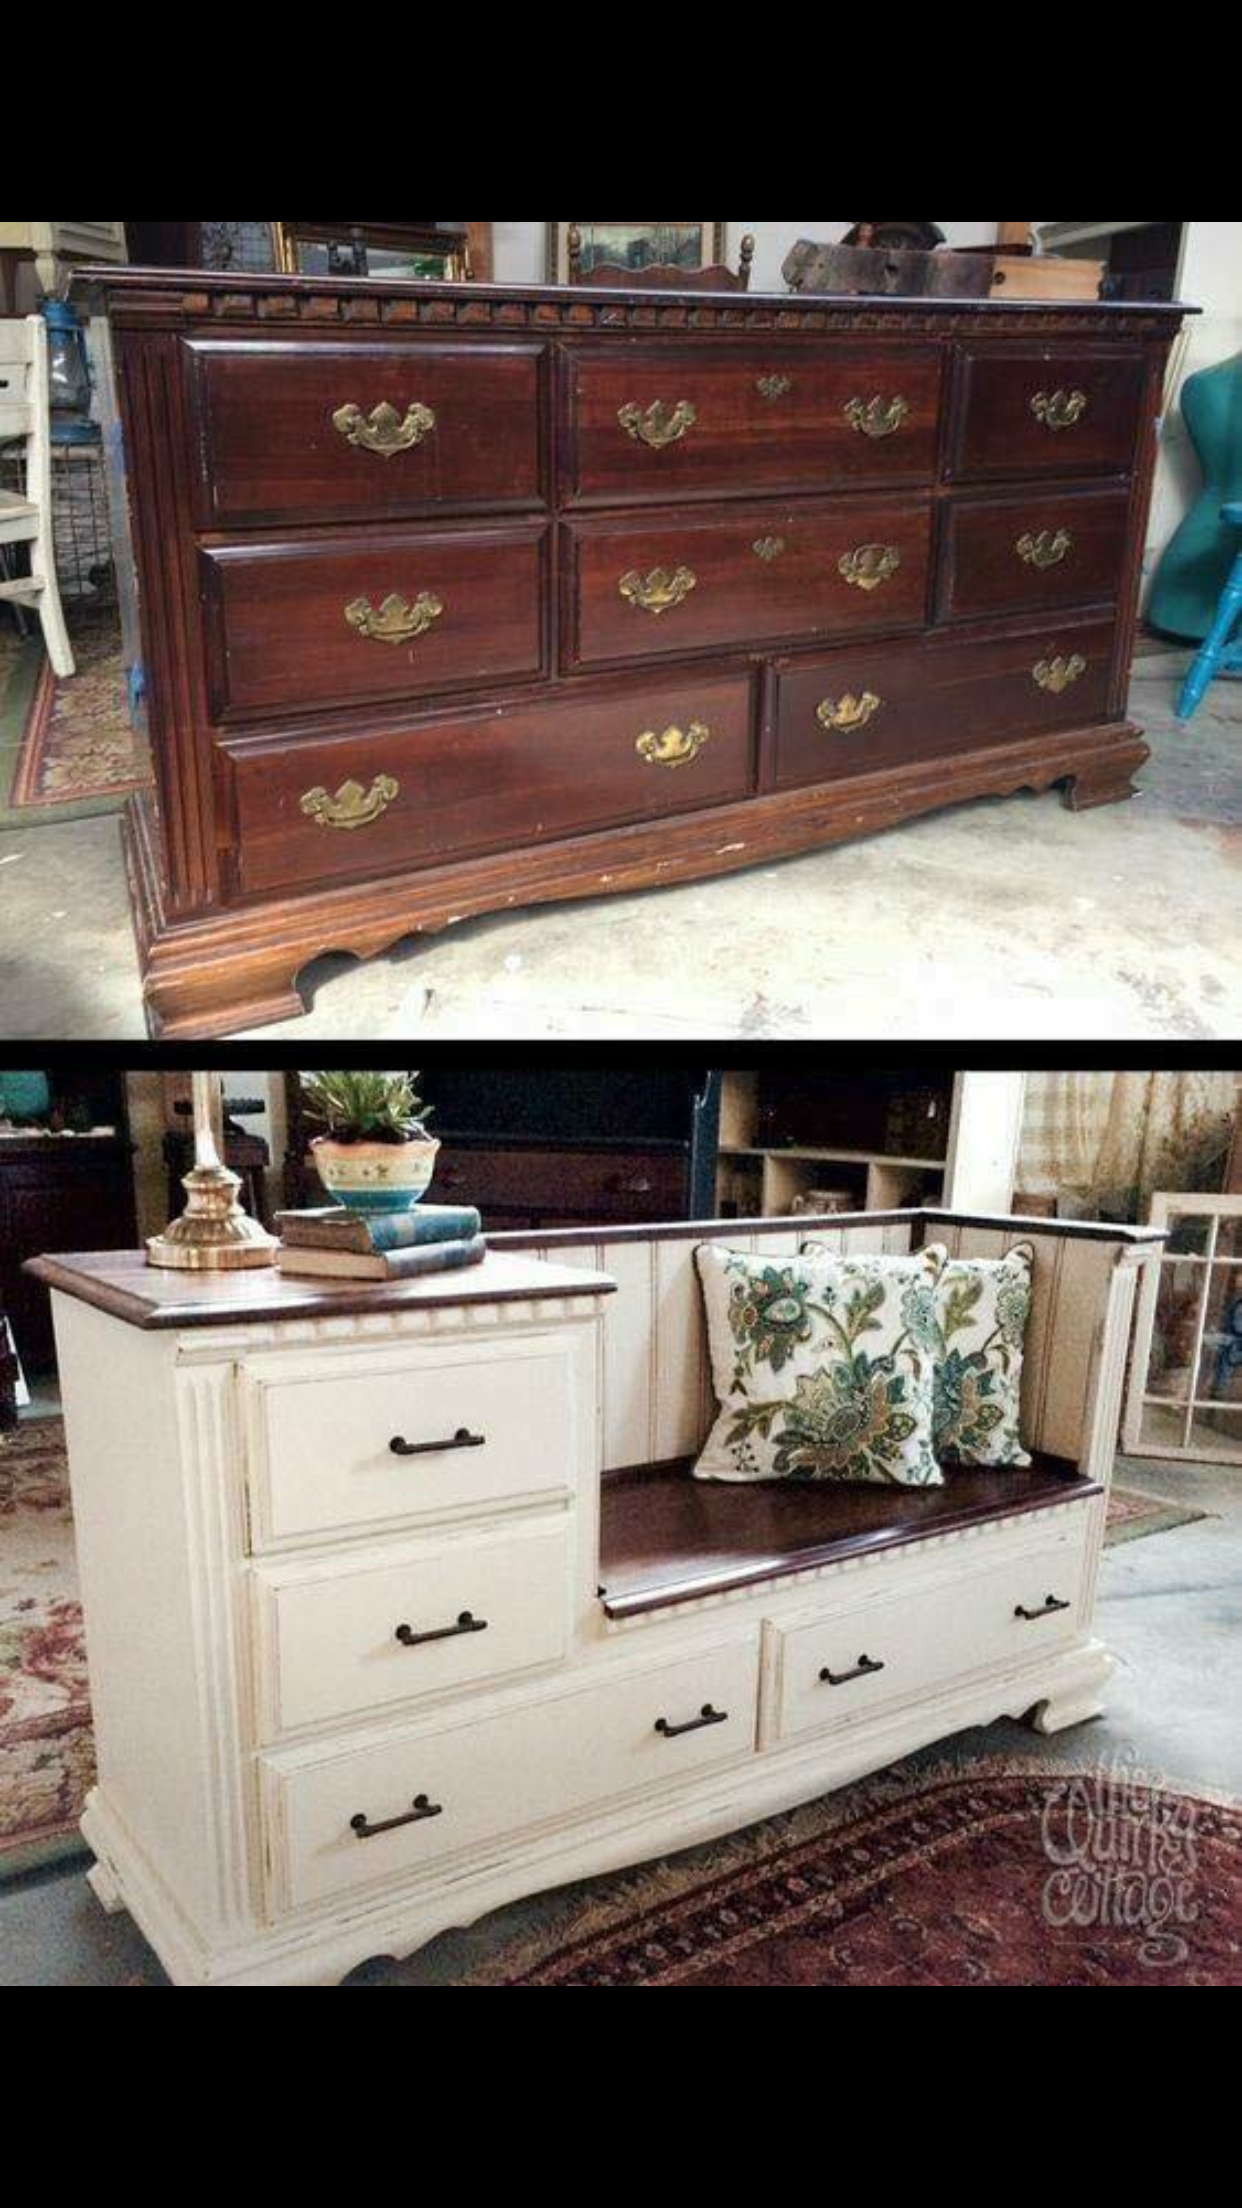 Converted Drawer Bench Home Decor And Furniture Diy